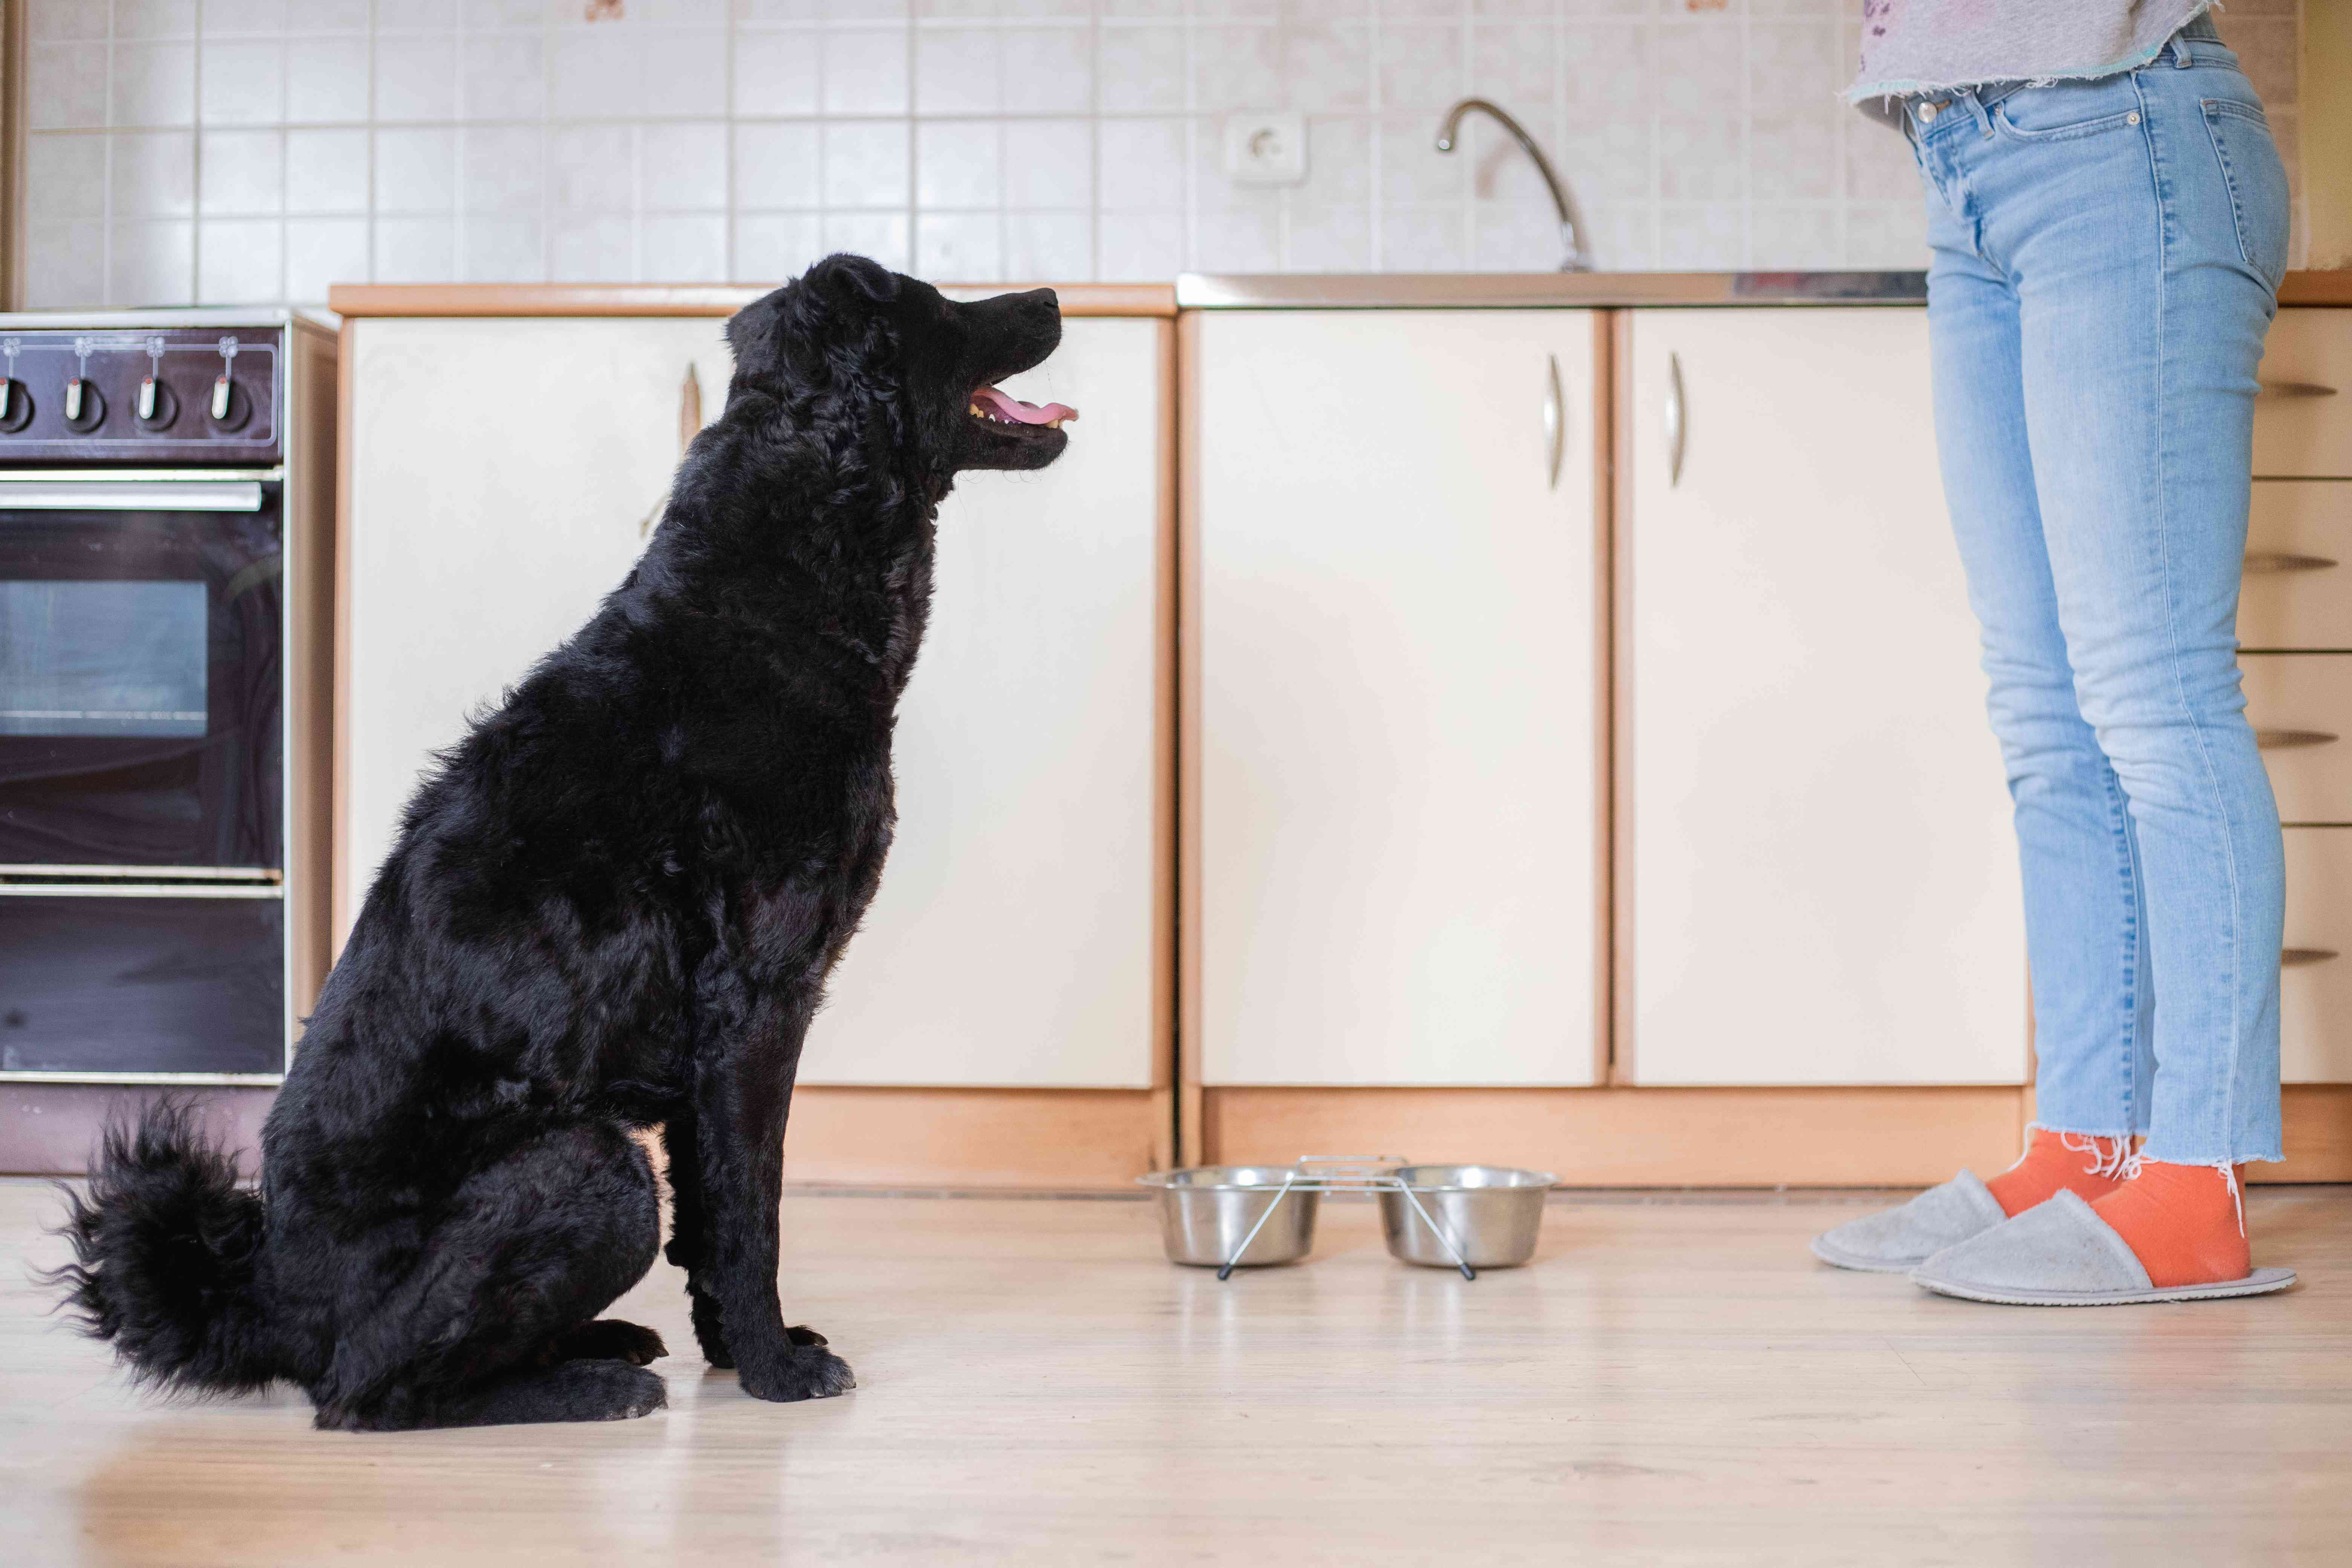 dog stares at human owner in kitchen next to empty dog bowl